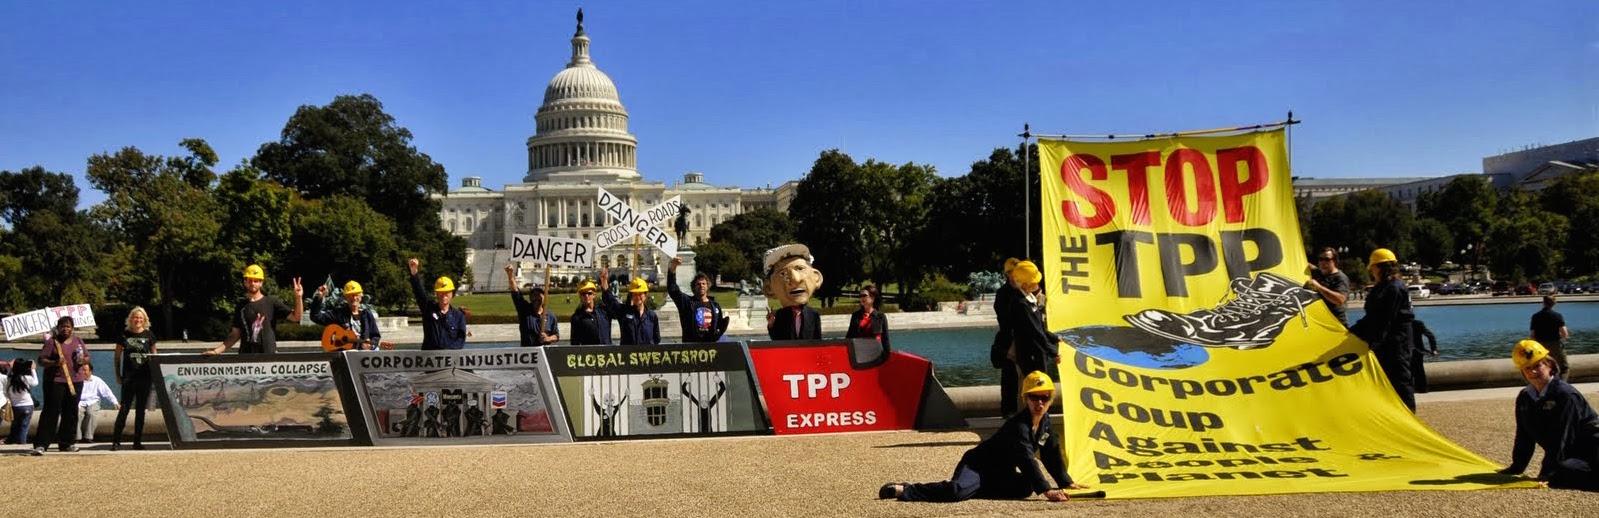 BEST_banner_size_Dont_Fast_Track_the_TPP_Train_Wreck_in_DC_Capitol_tpp_express.jpg